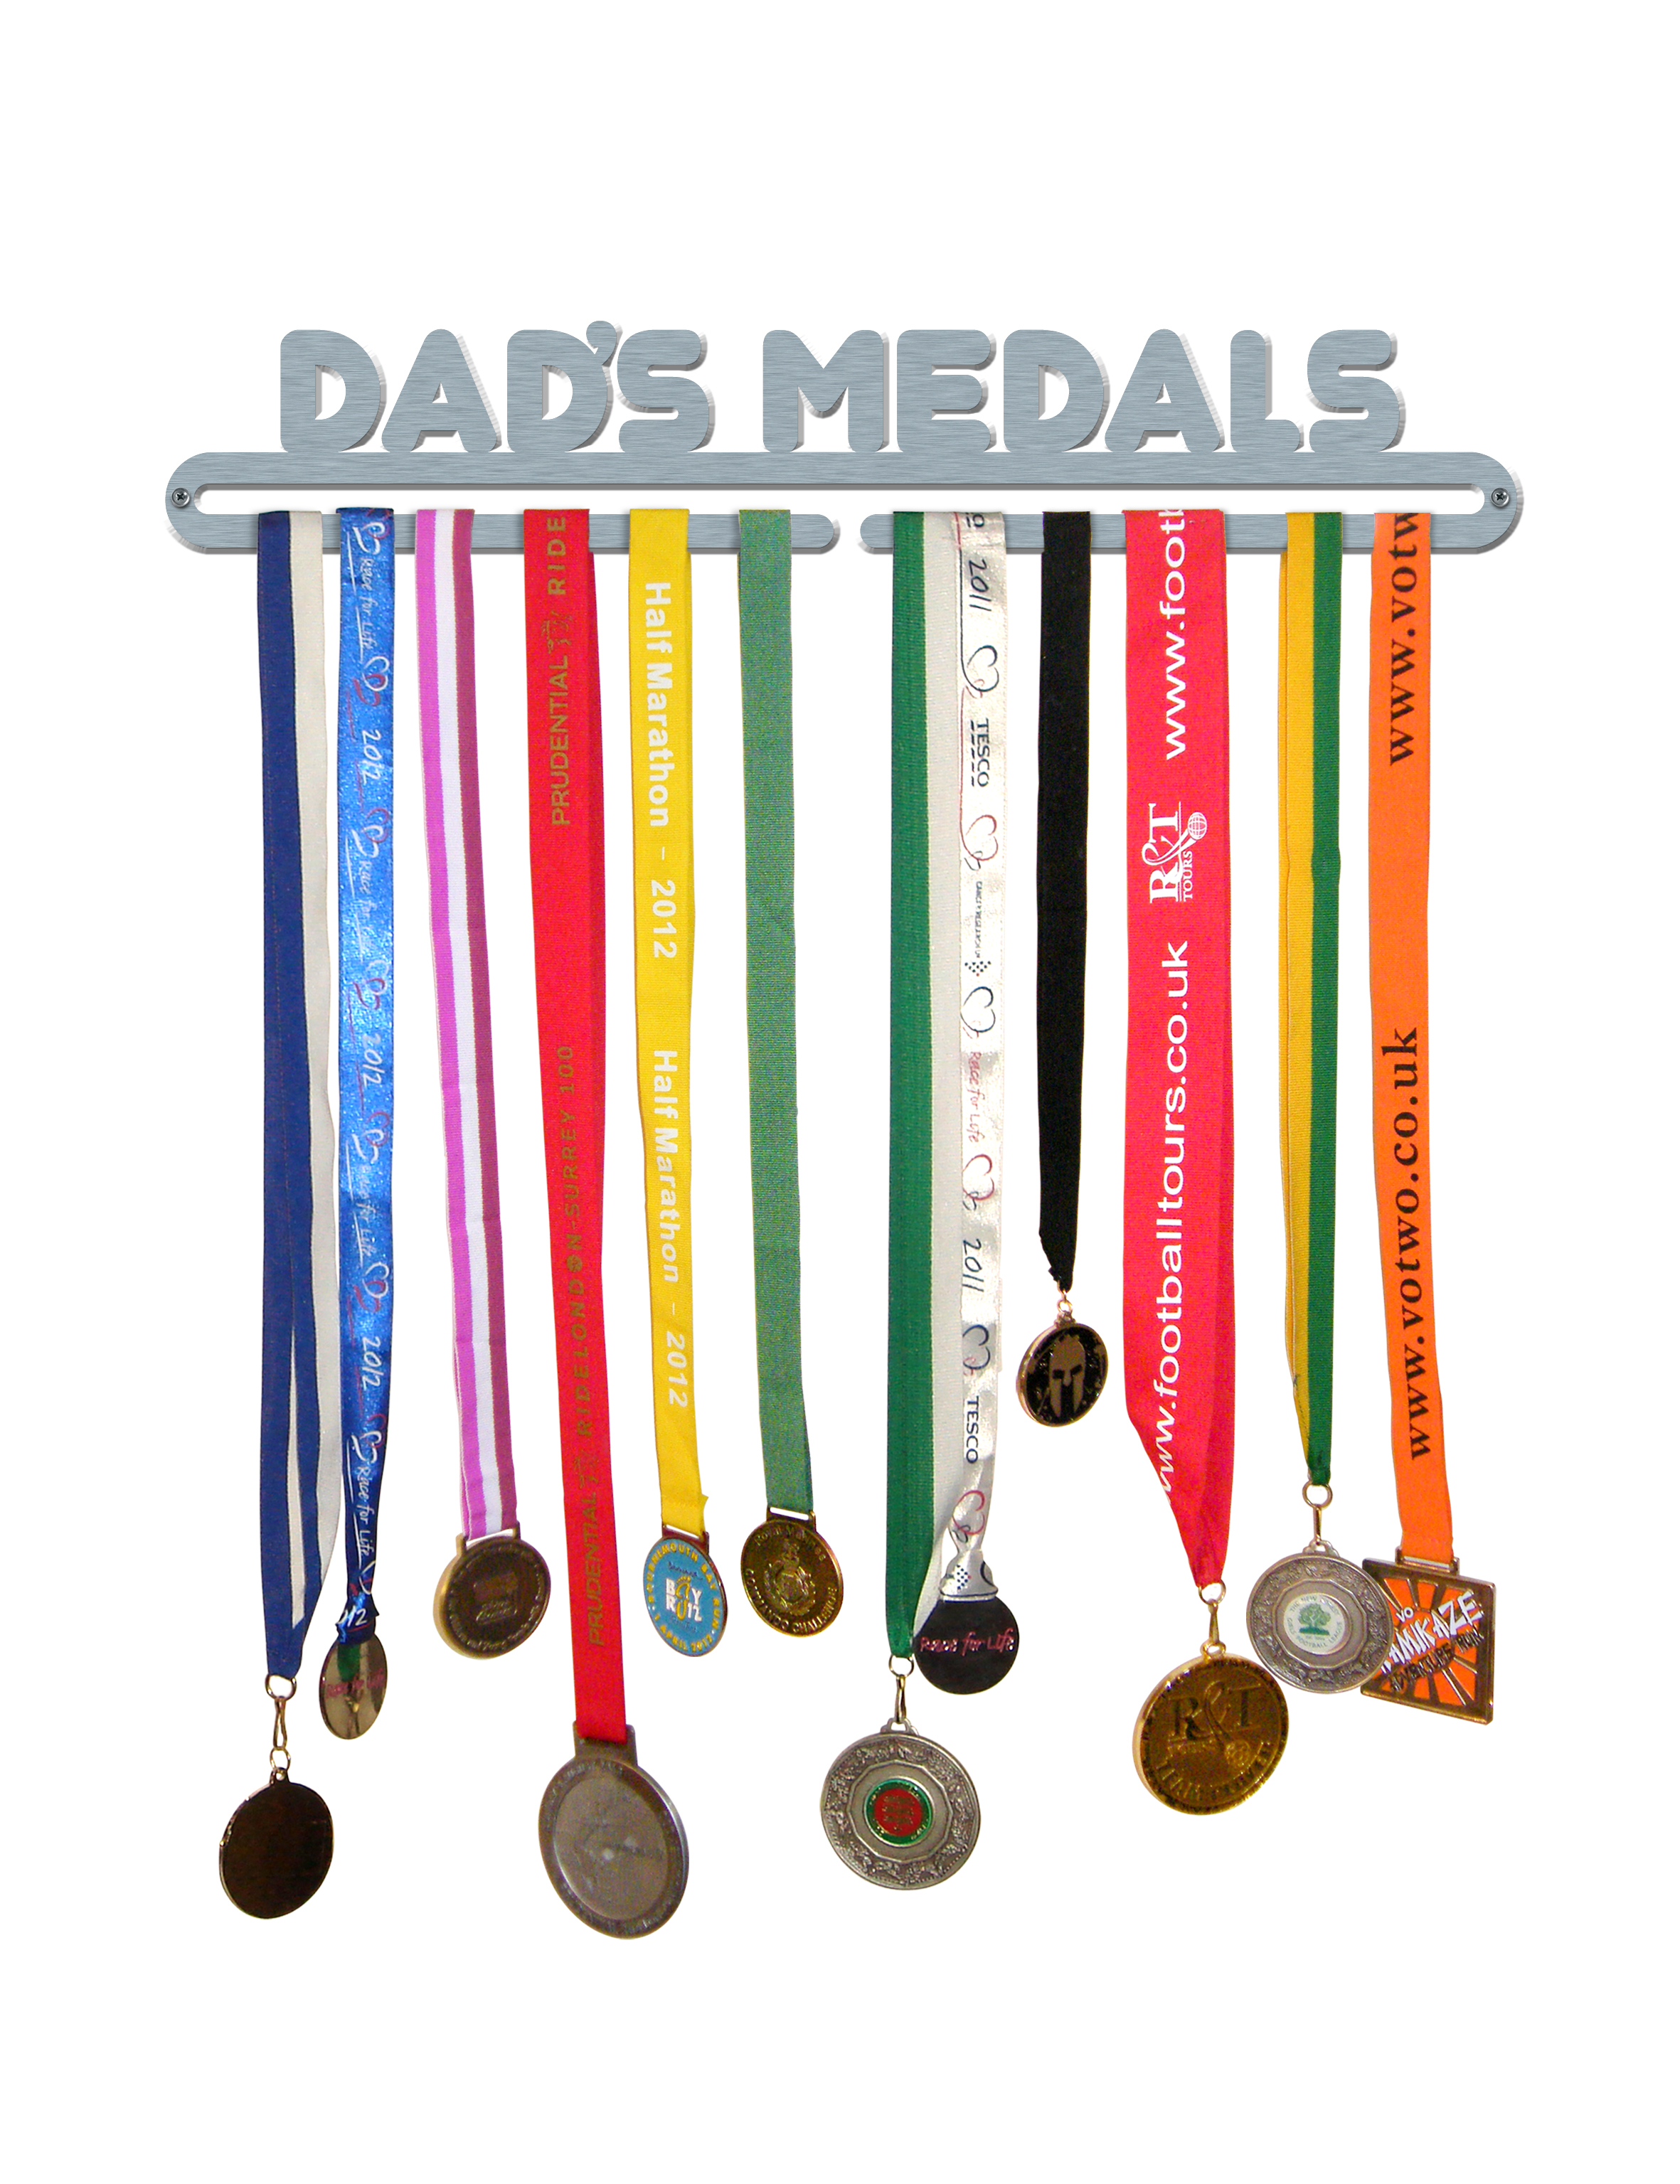 Christmas Running Medals.Dad S Medals